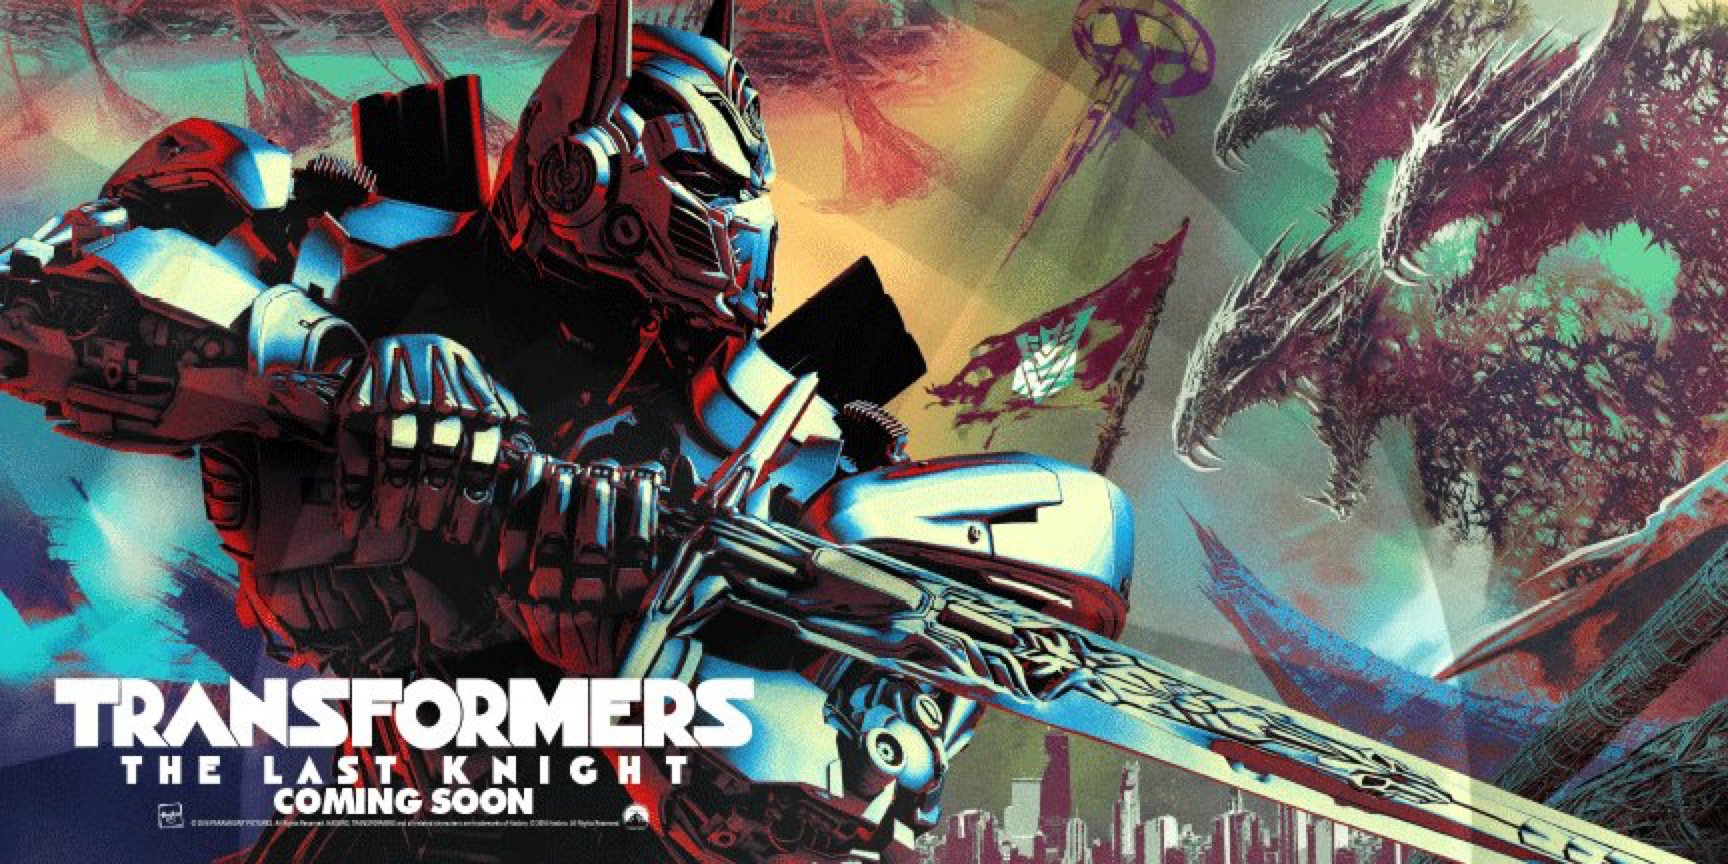 transformers-the-last-knight-06dezembro2016-1